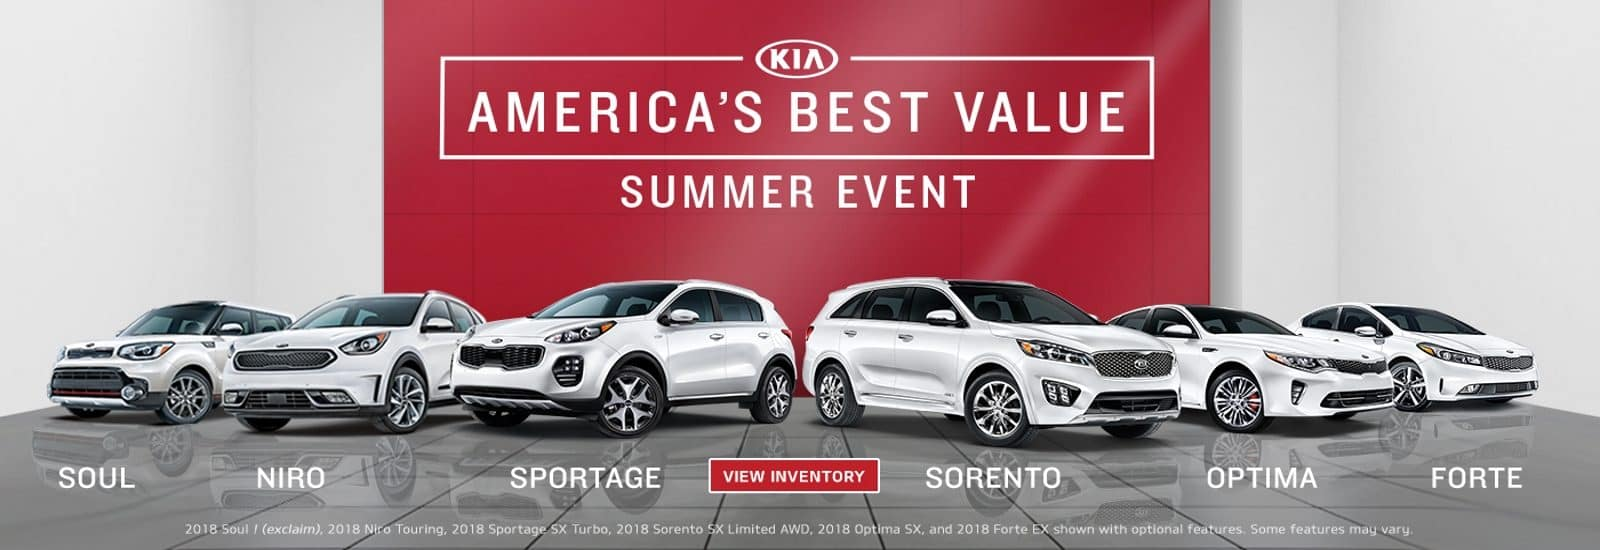 Americas Best Value Summer Event